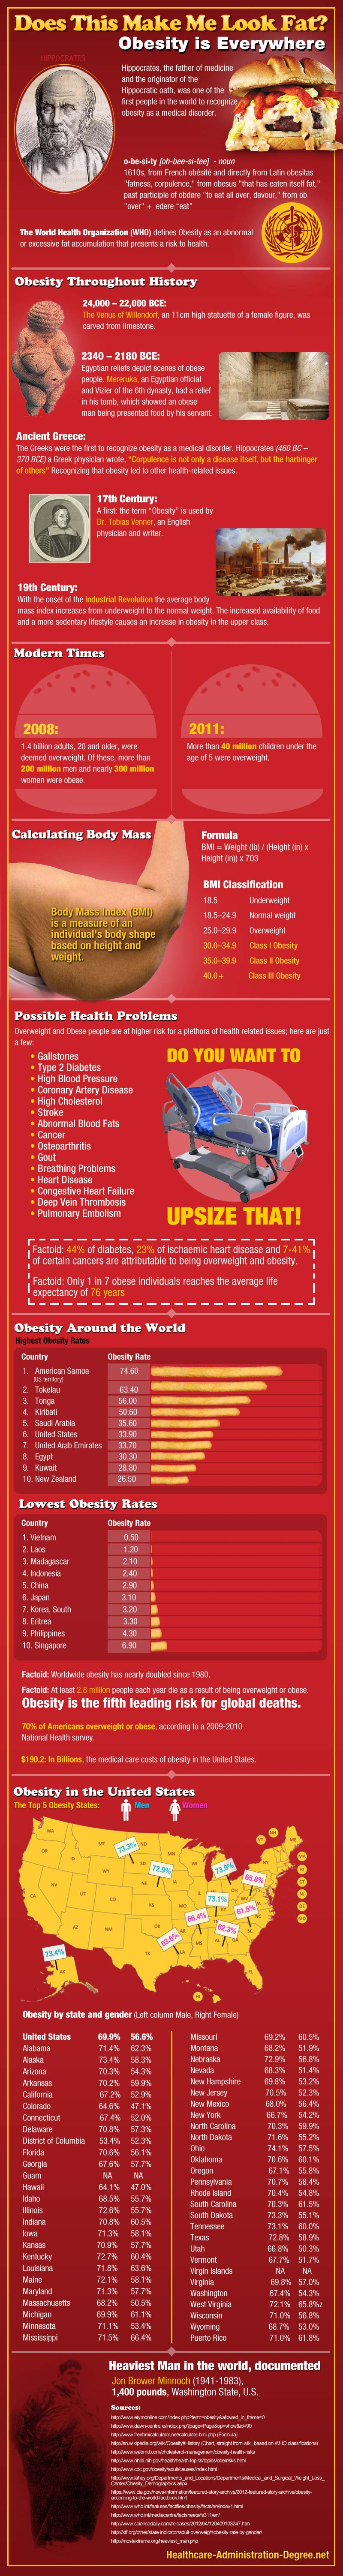 Obesity Facts and Data-Infographic